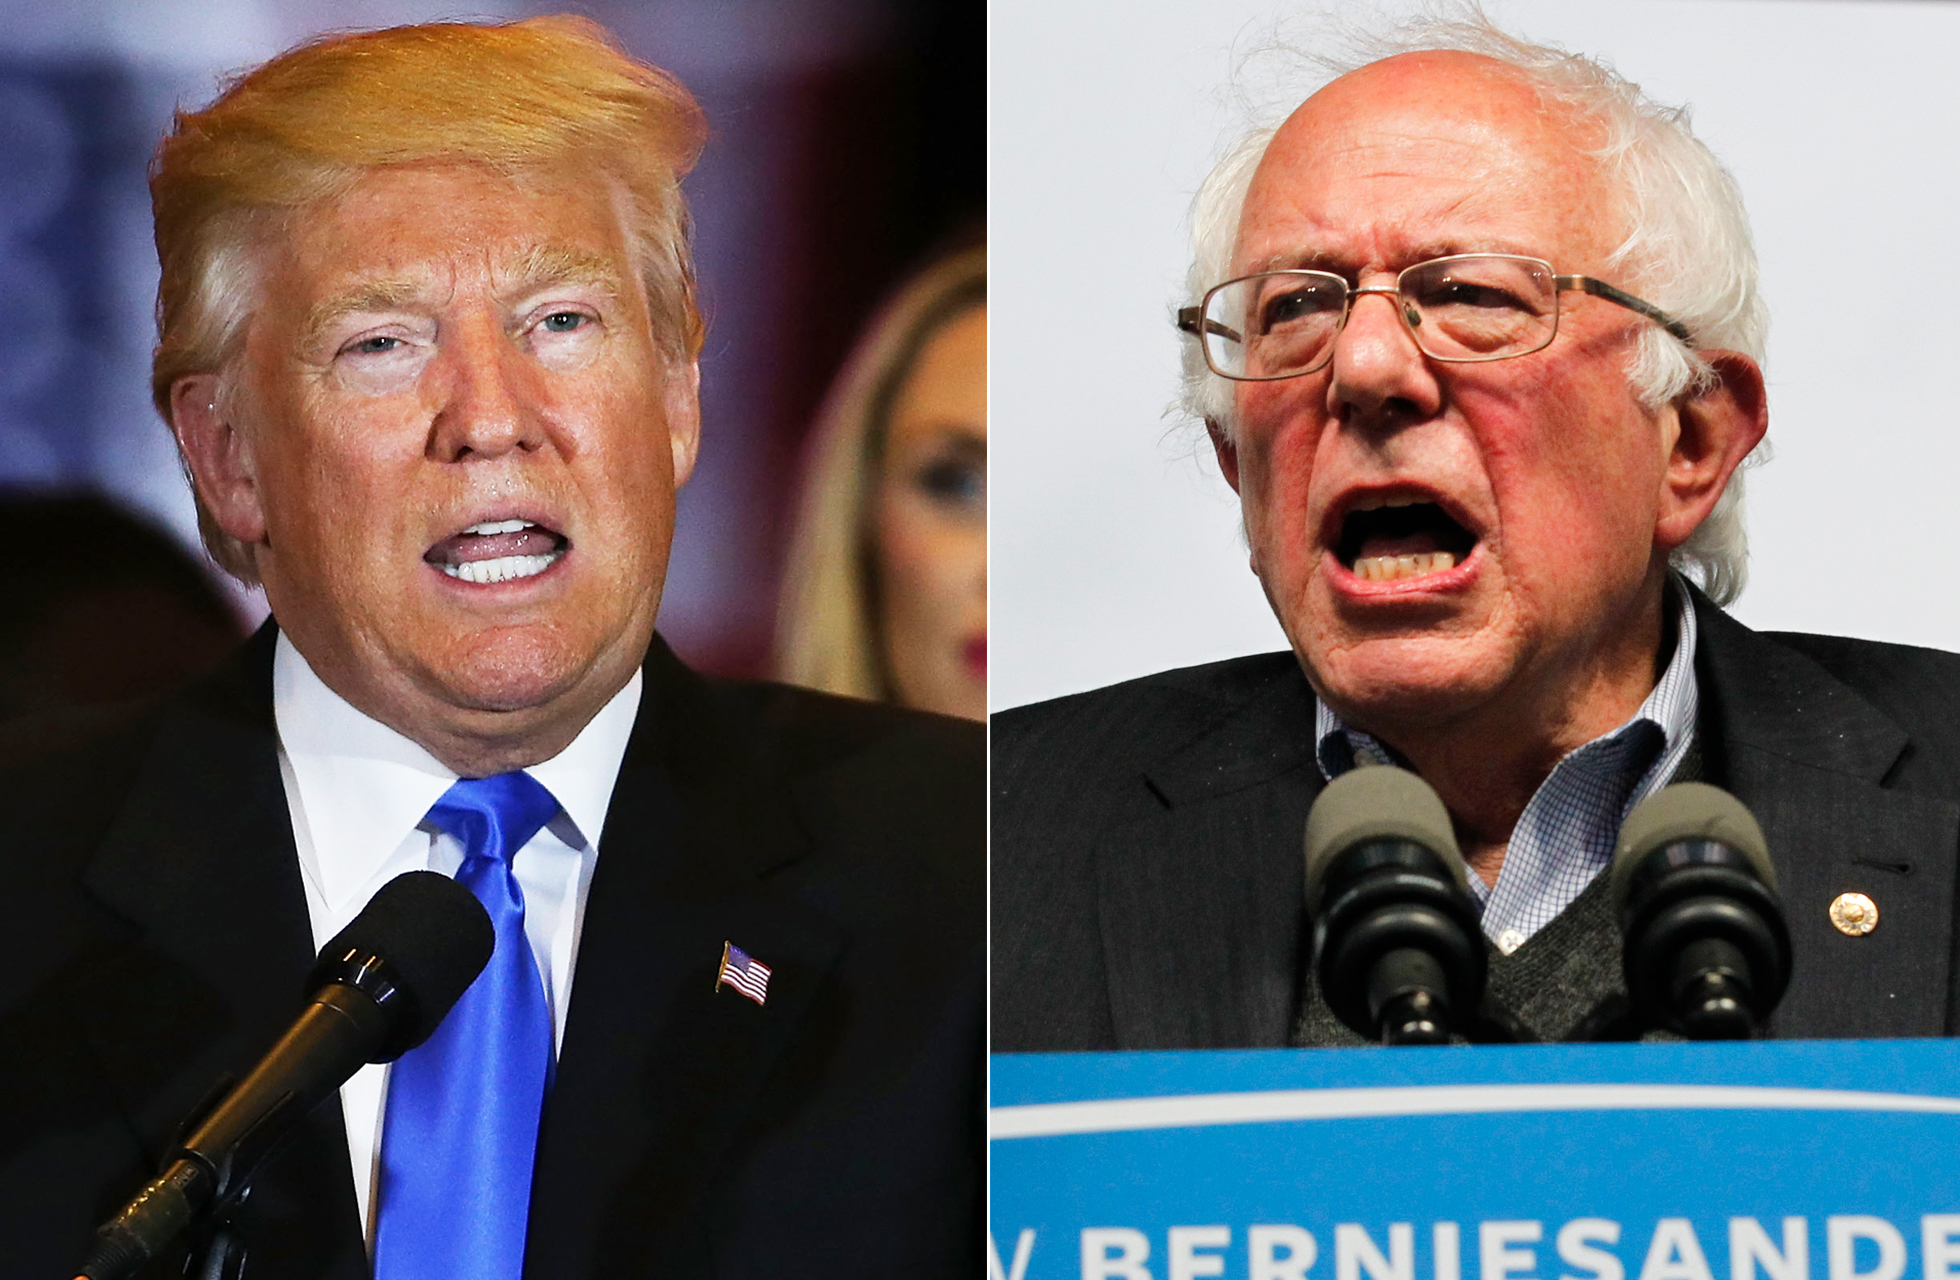 From left: Donald Trump on May 3, 2016 in New York City and Bernie Sanders on May 3, 2016 in Louisville, Ky.